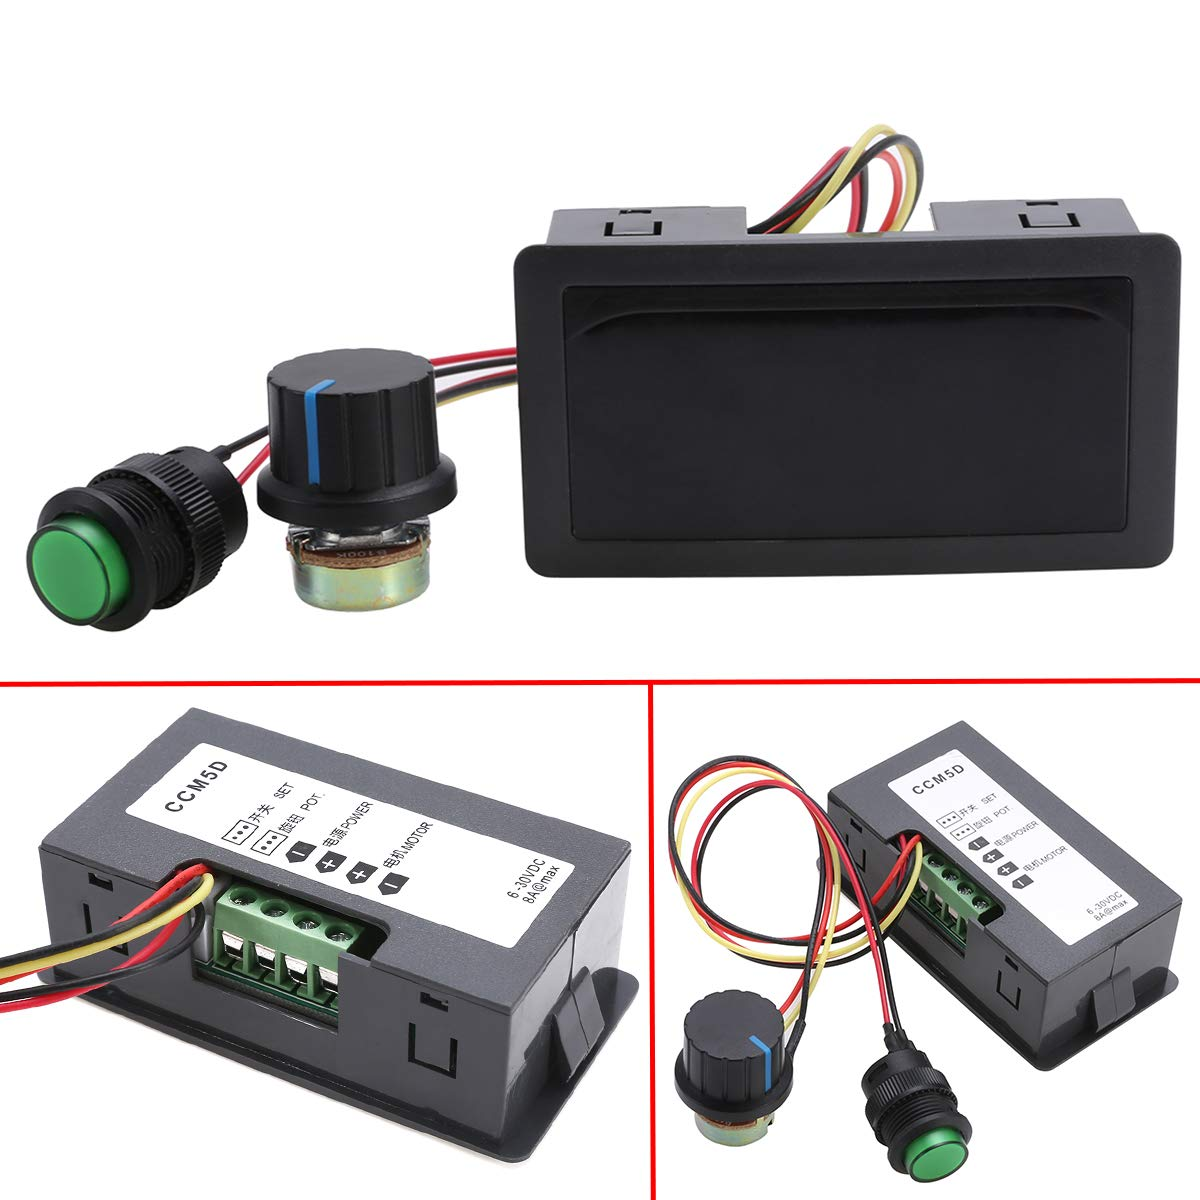 DC 6-30V 12V 24V Max 8A Motor PWM Speed Controller With LCD Display Switch